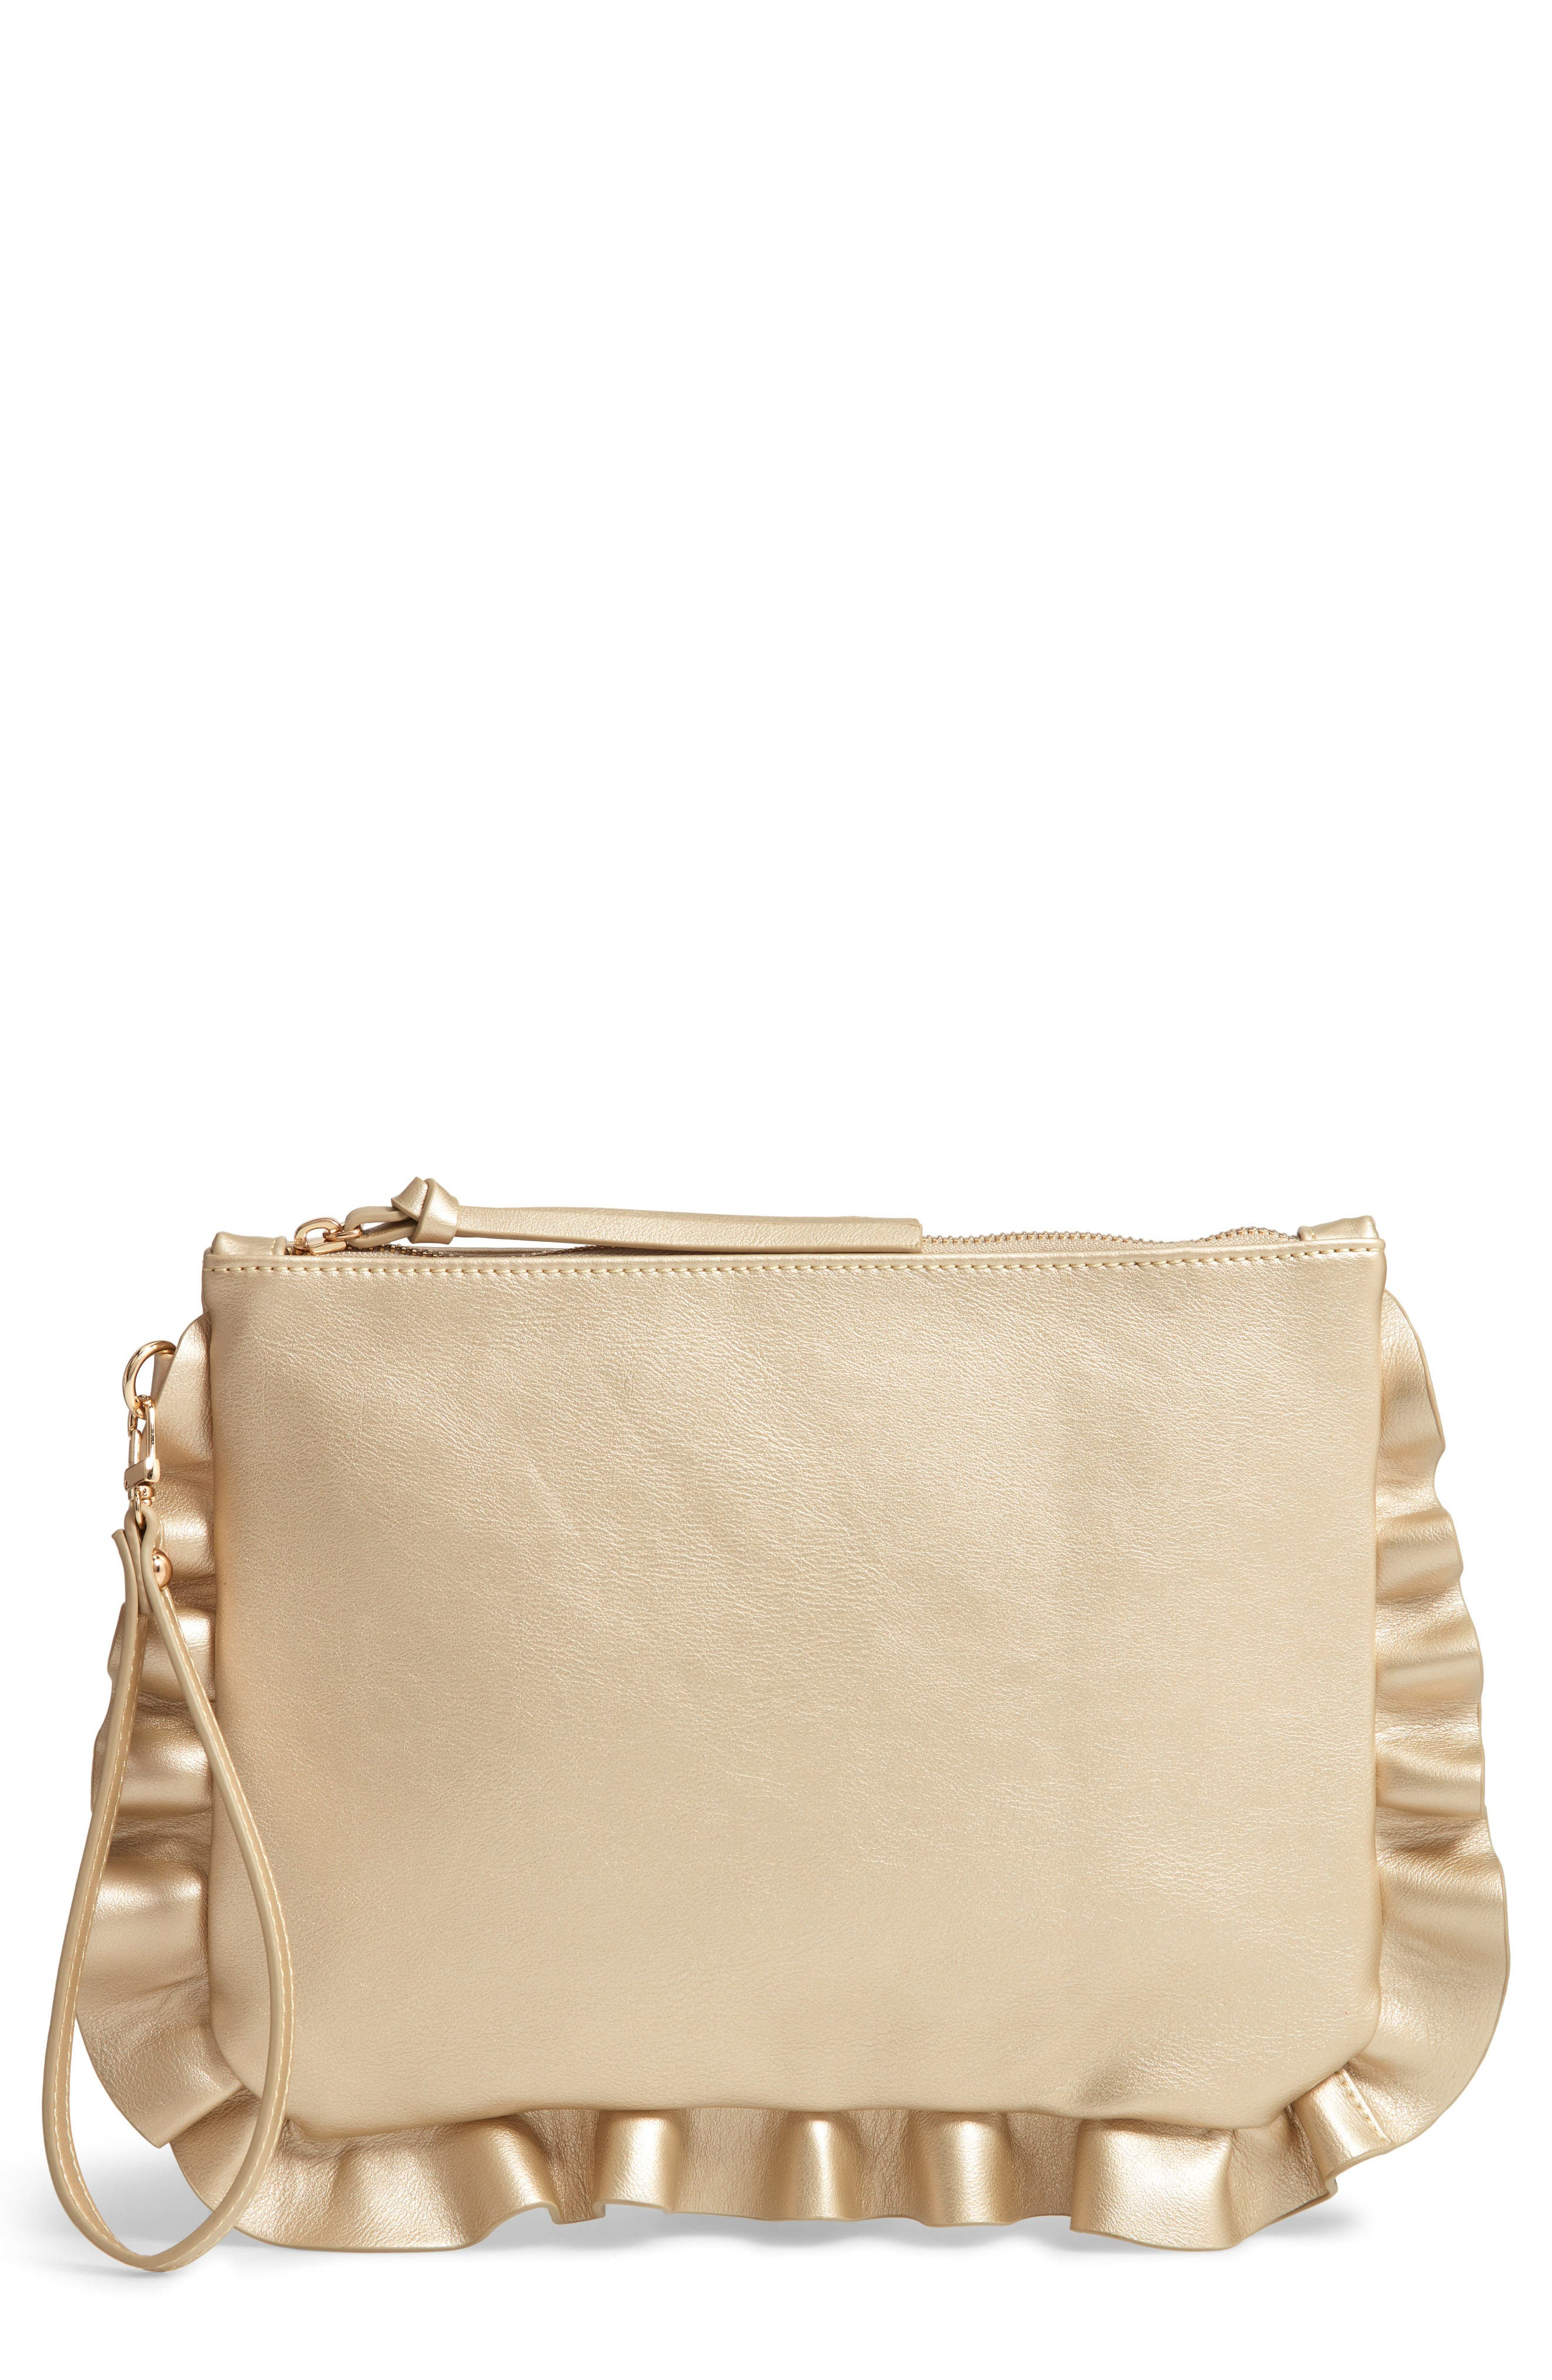 SOLE SOCIETY Adelina Faux Leather Ruffle Clutch, Main, color, GOLD